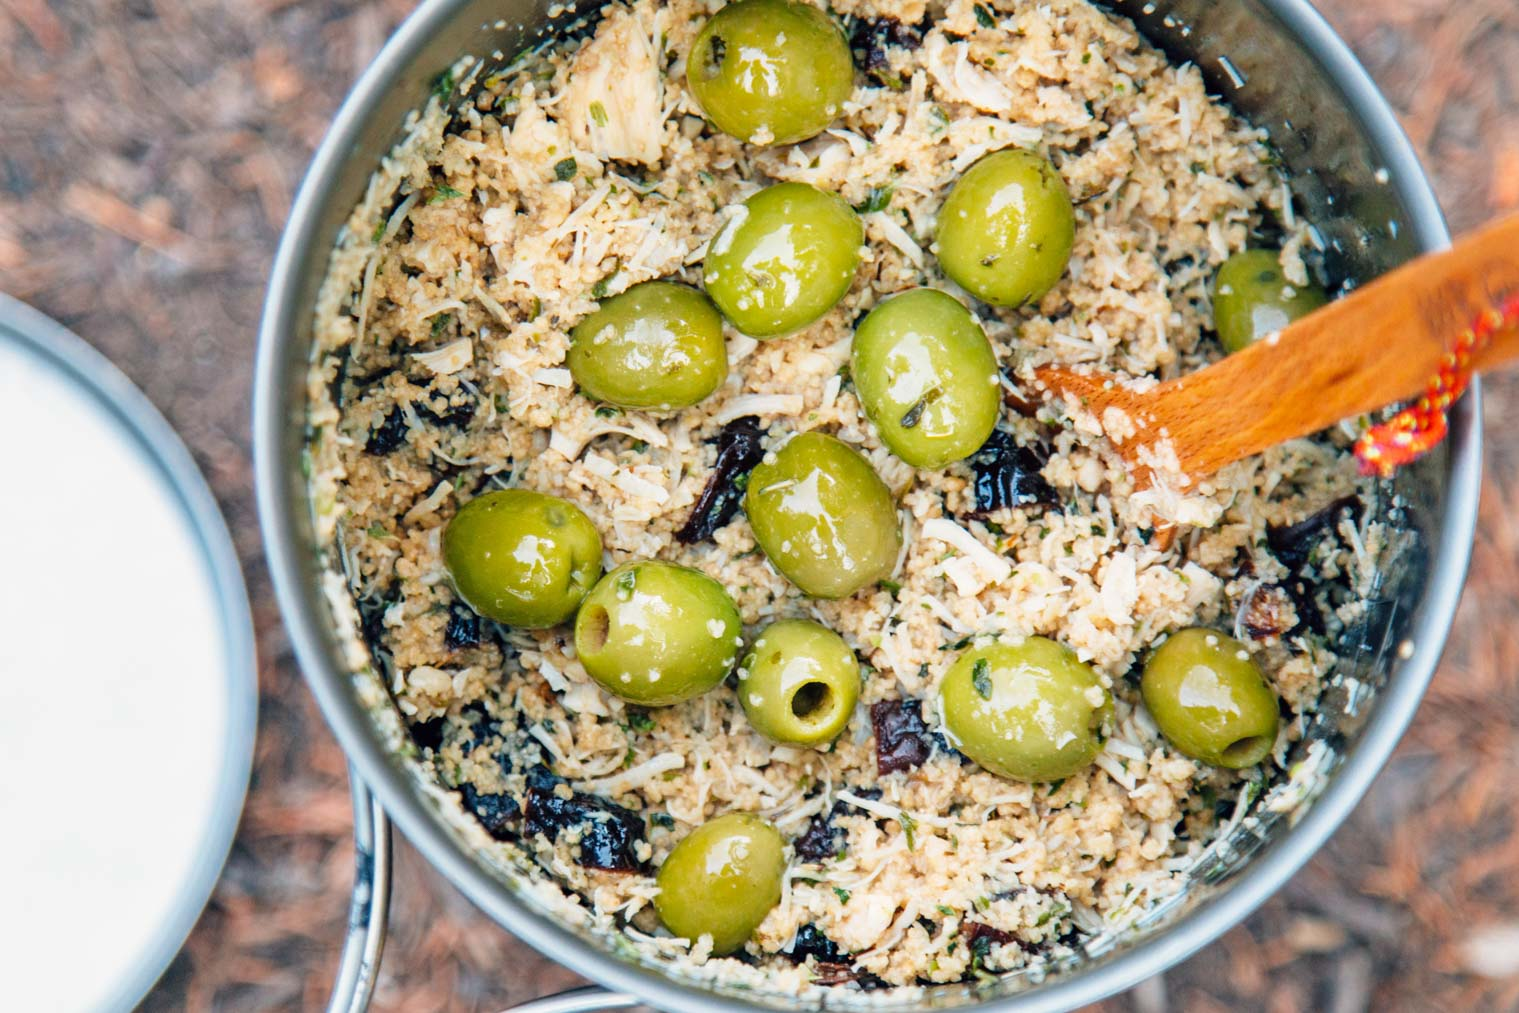 Backpackers Chicken Marbella A Sweet Savory Backpacking Meal That Uses No Dehydrated Ingredients And